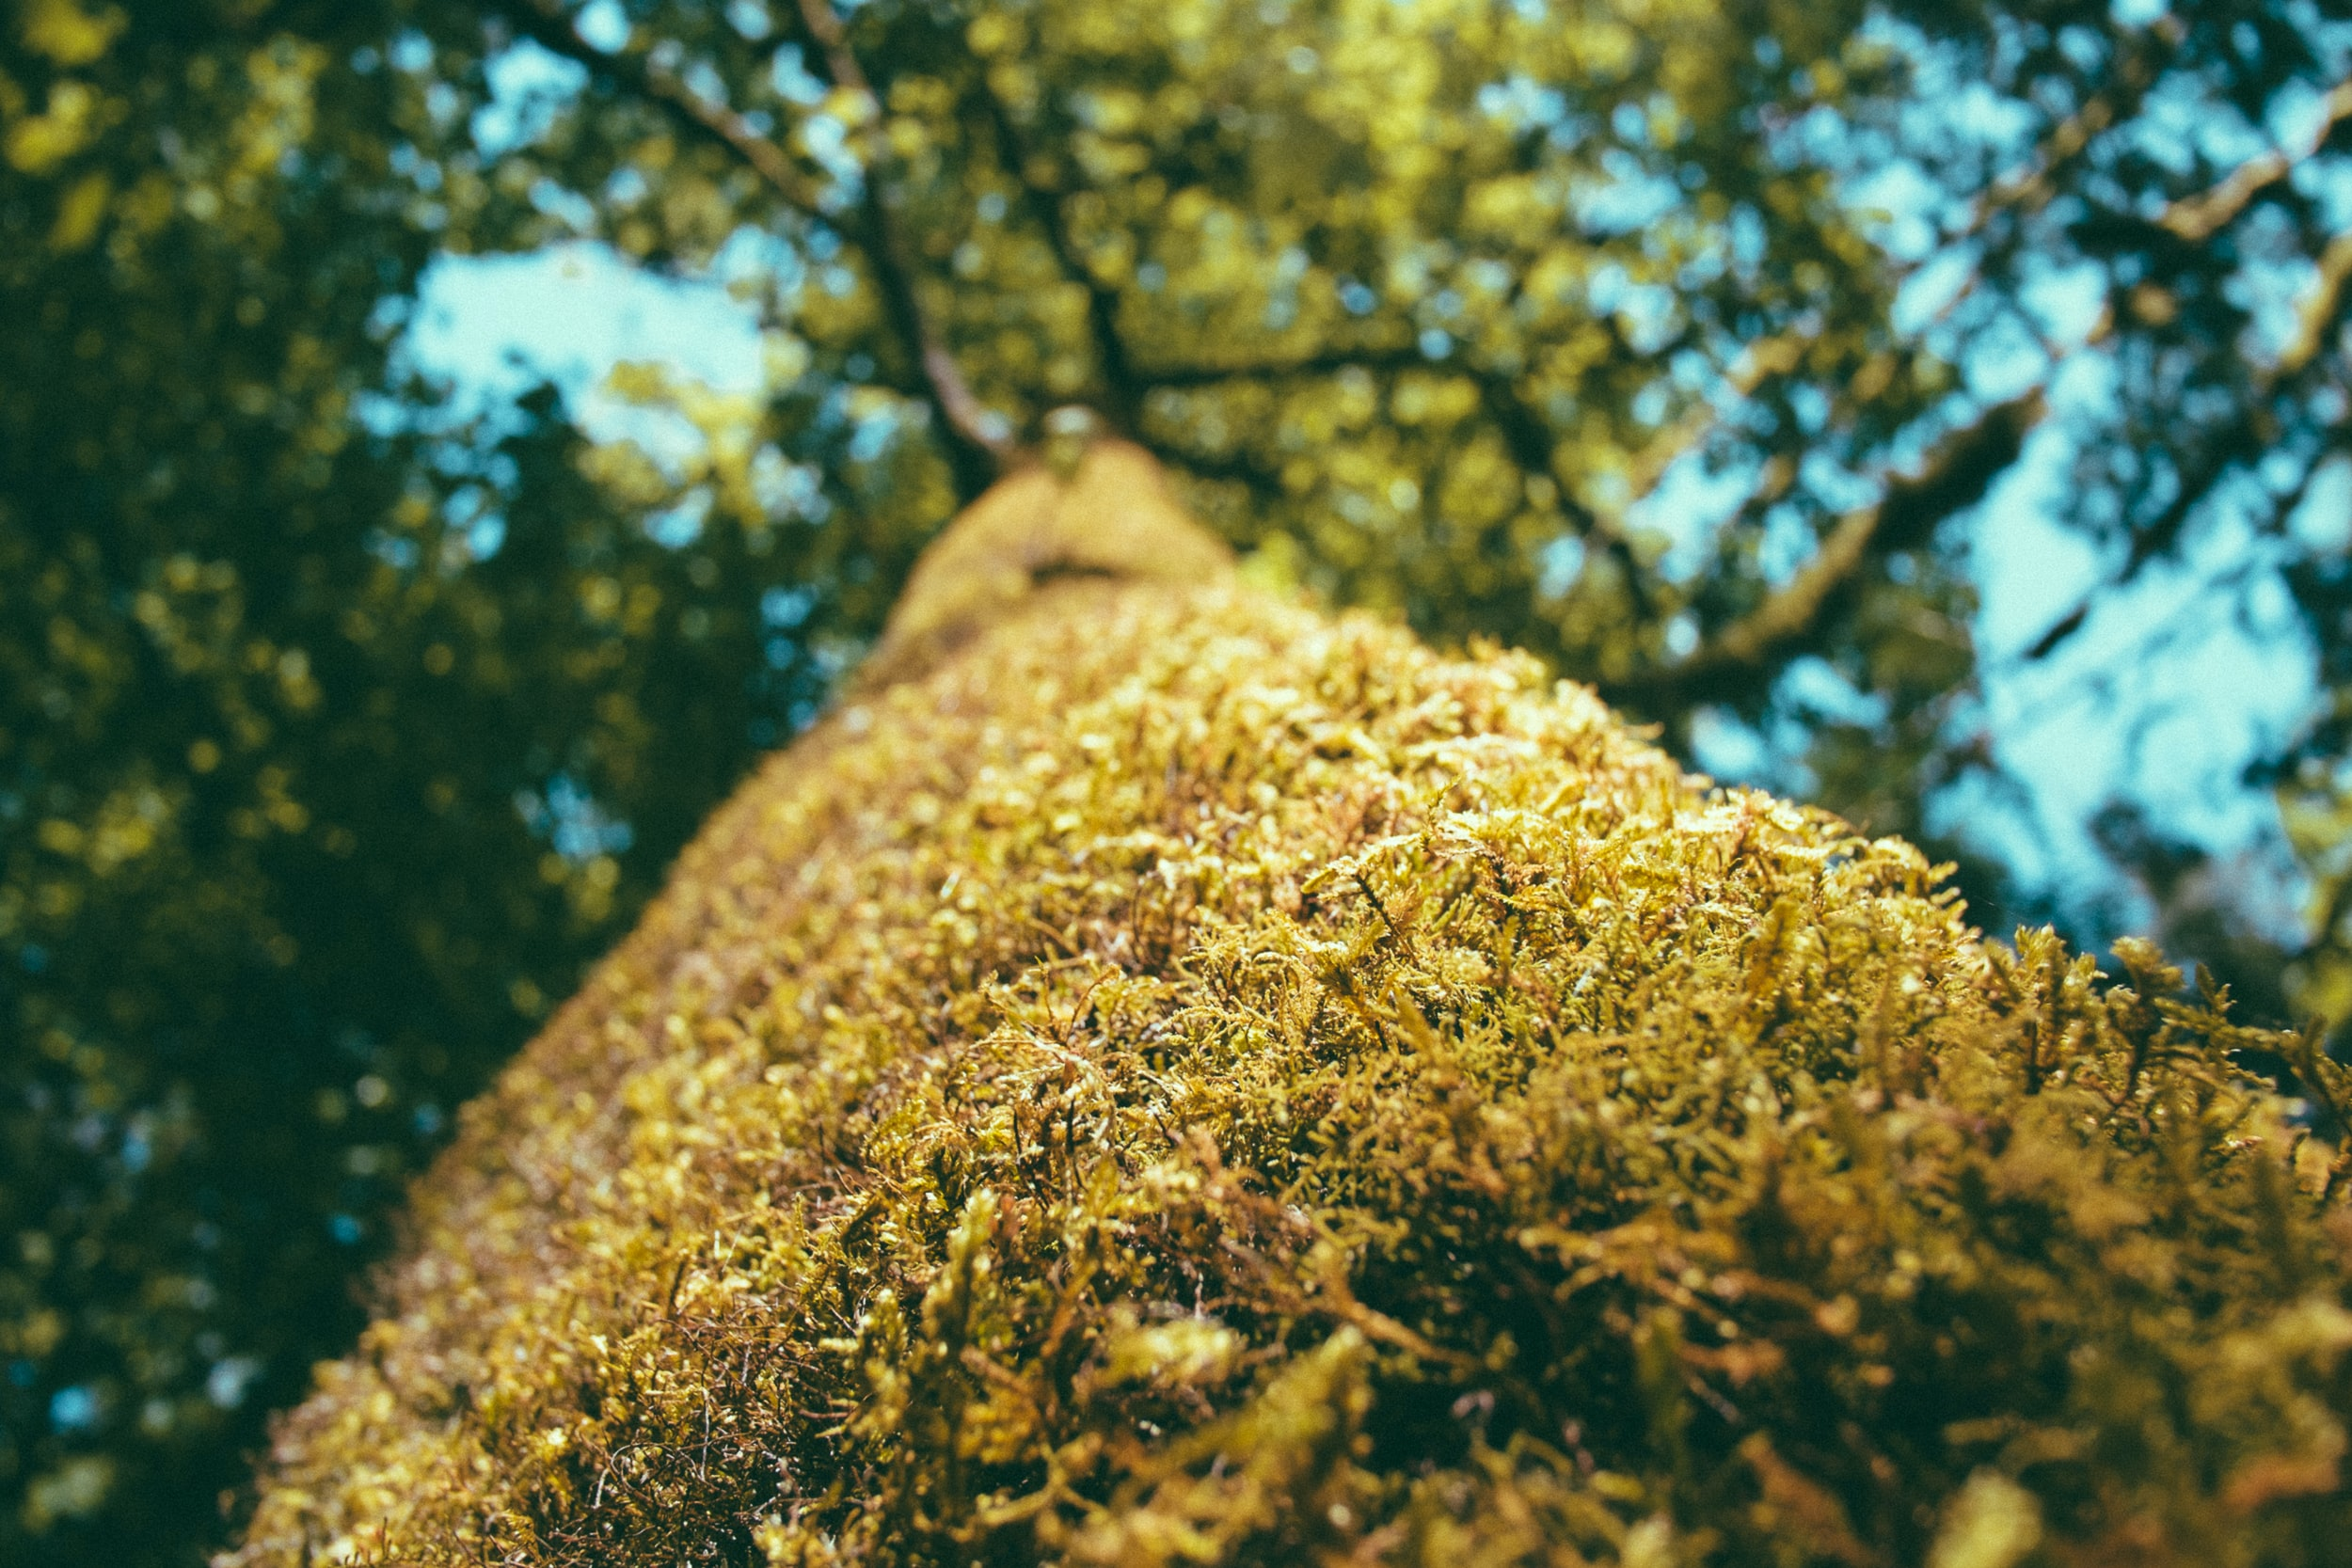 Macro shot of moss growing on a forest tree